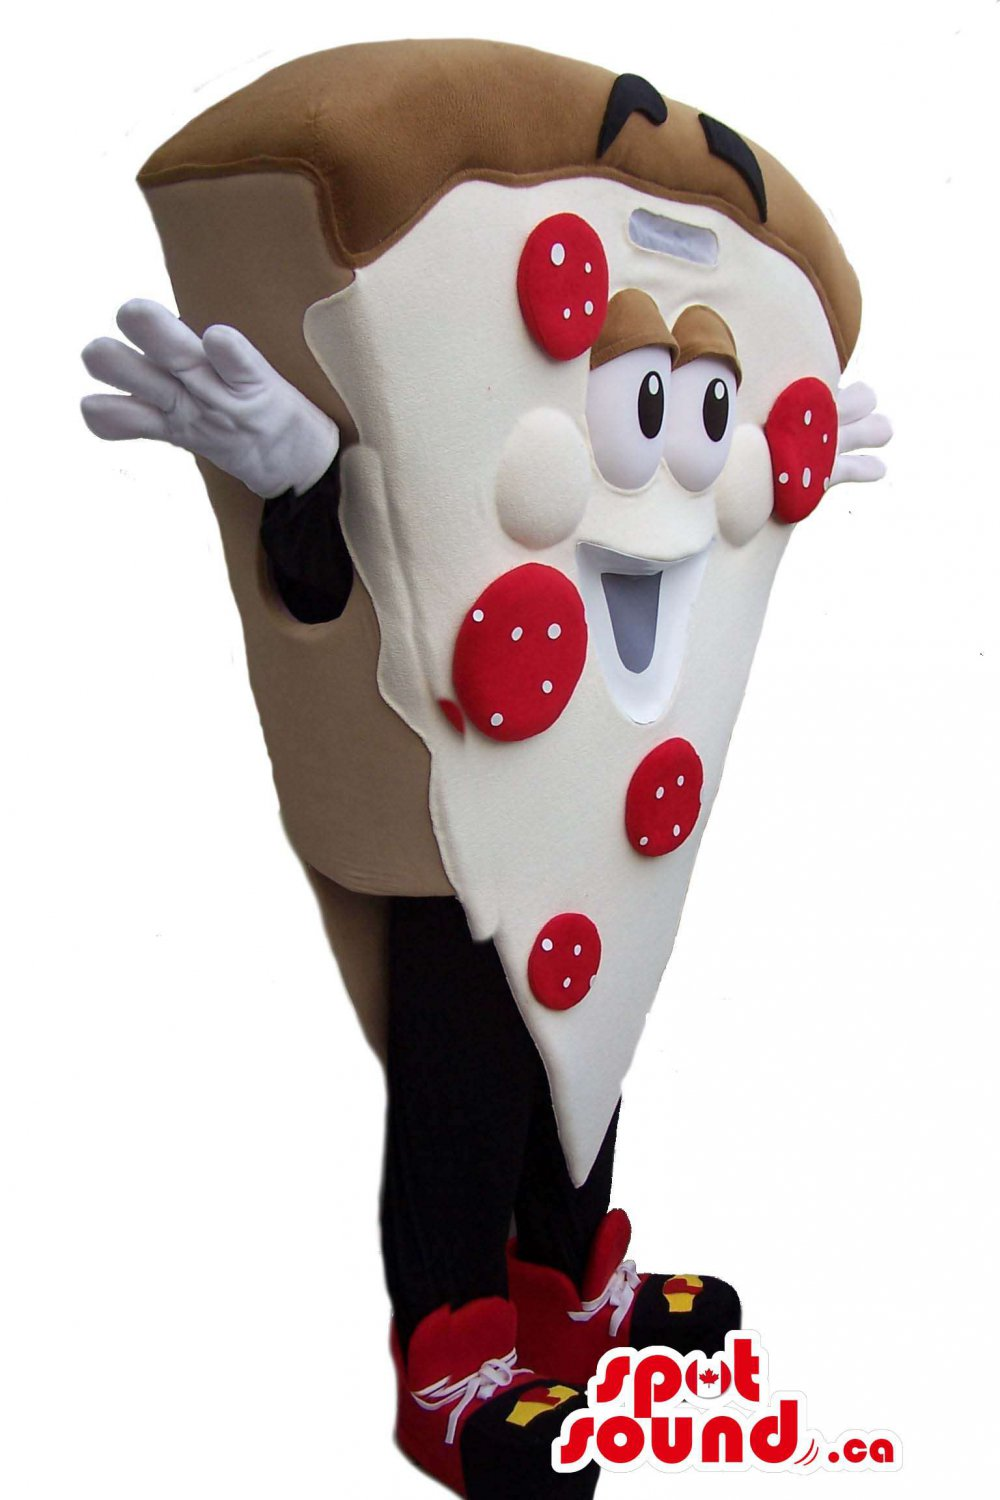 Pizza Slice Mascot SpotSound Canada With Pepperoni And Large Eyes And Mouth